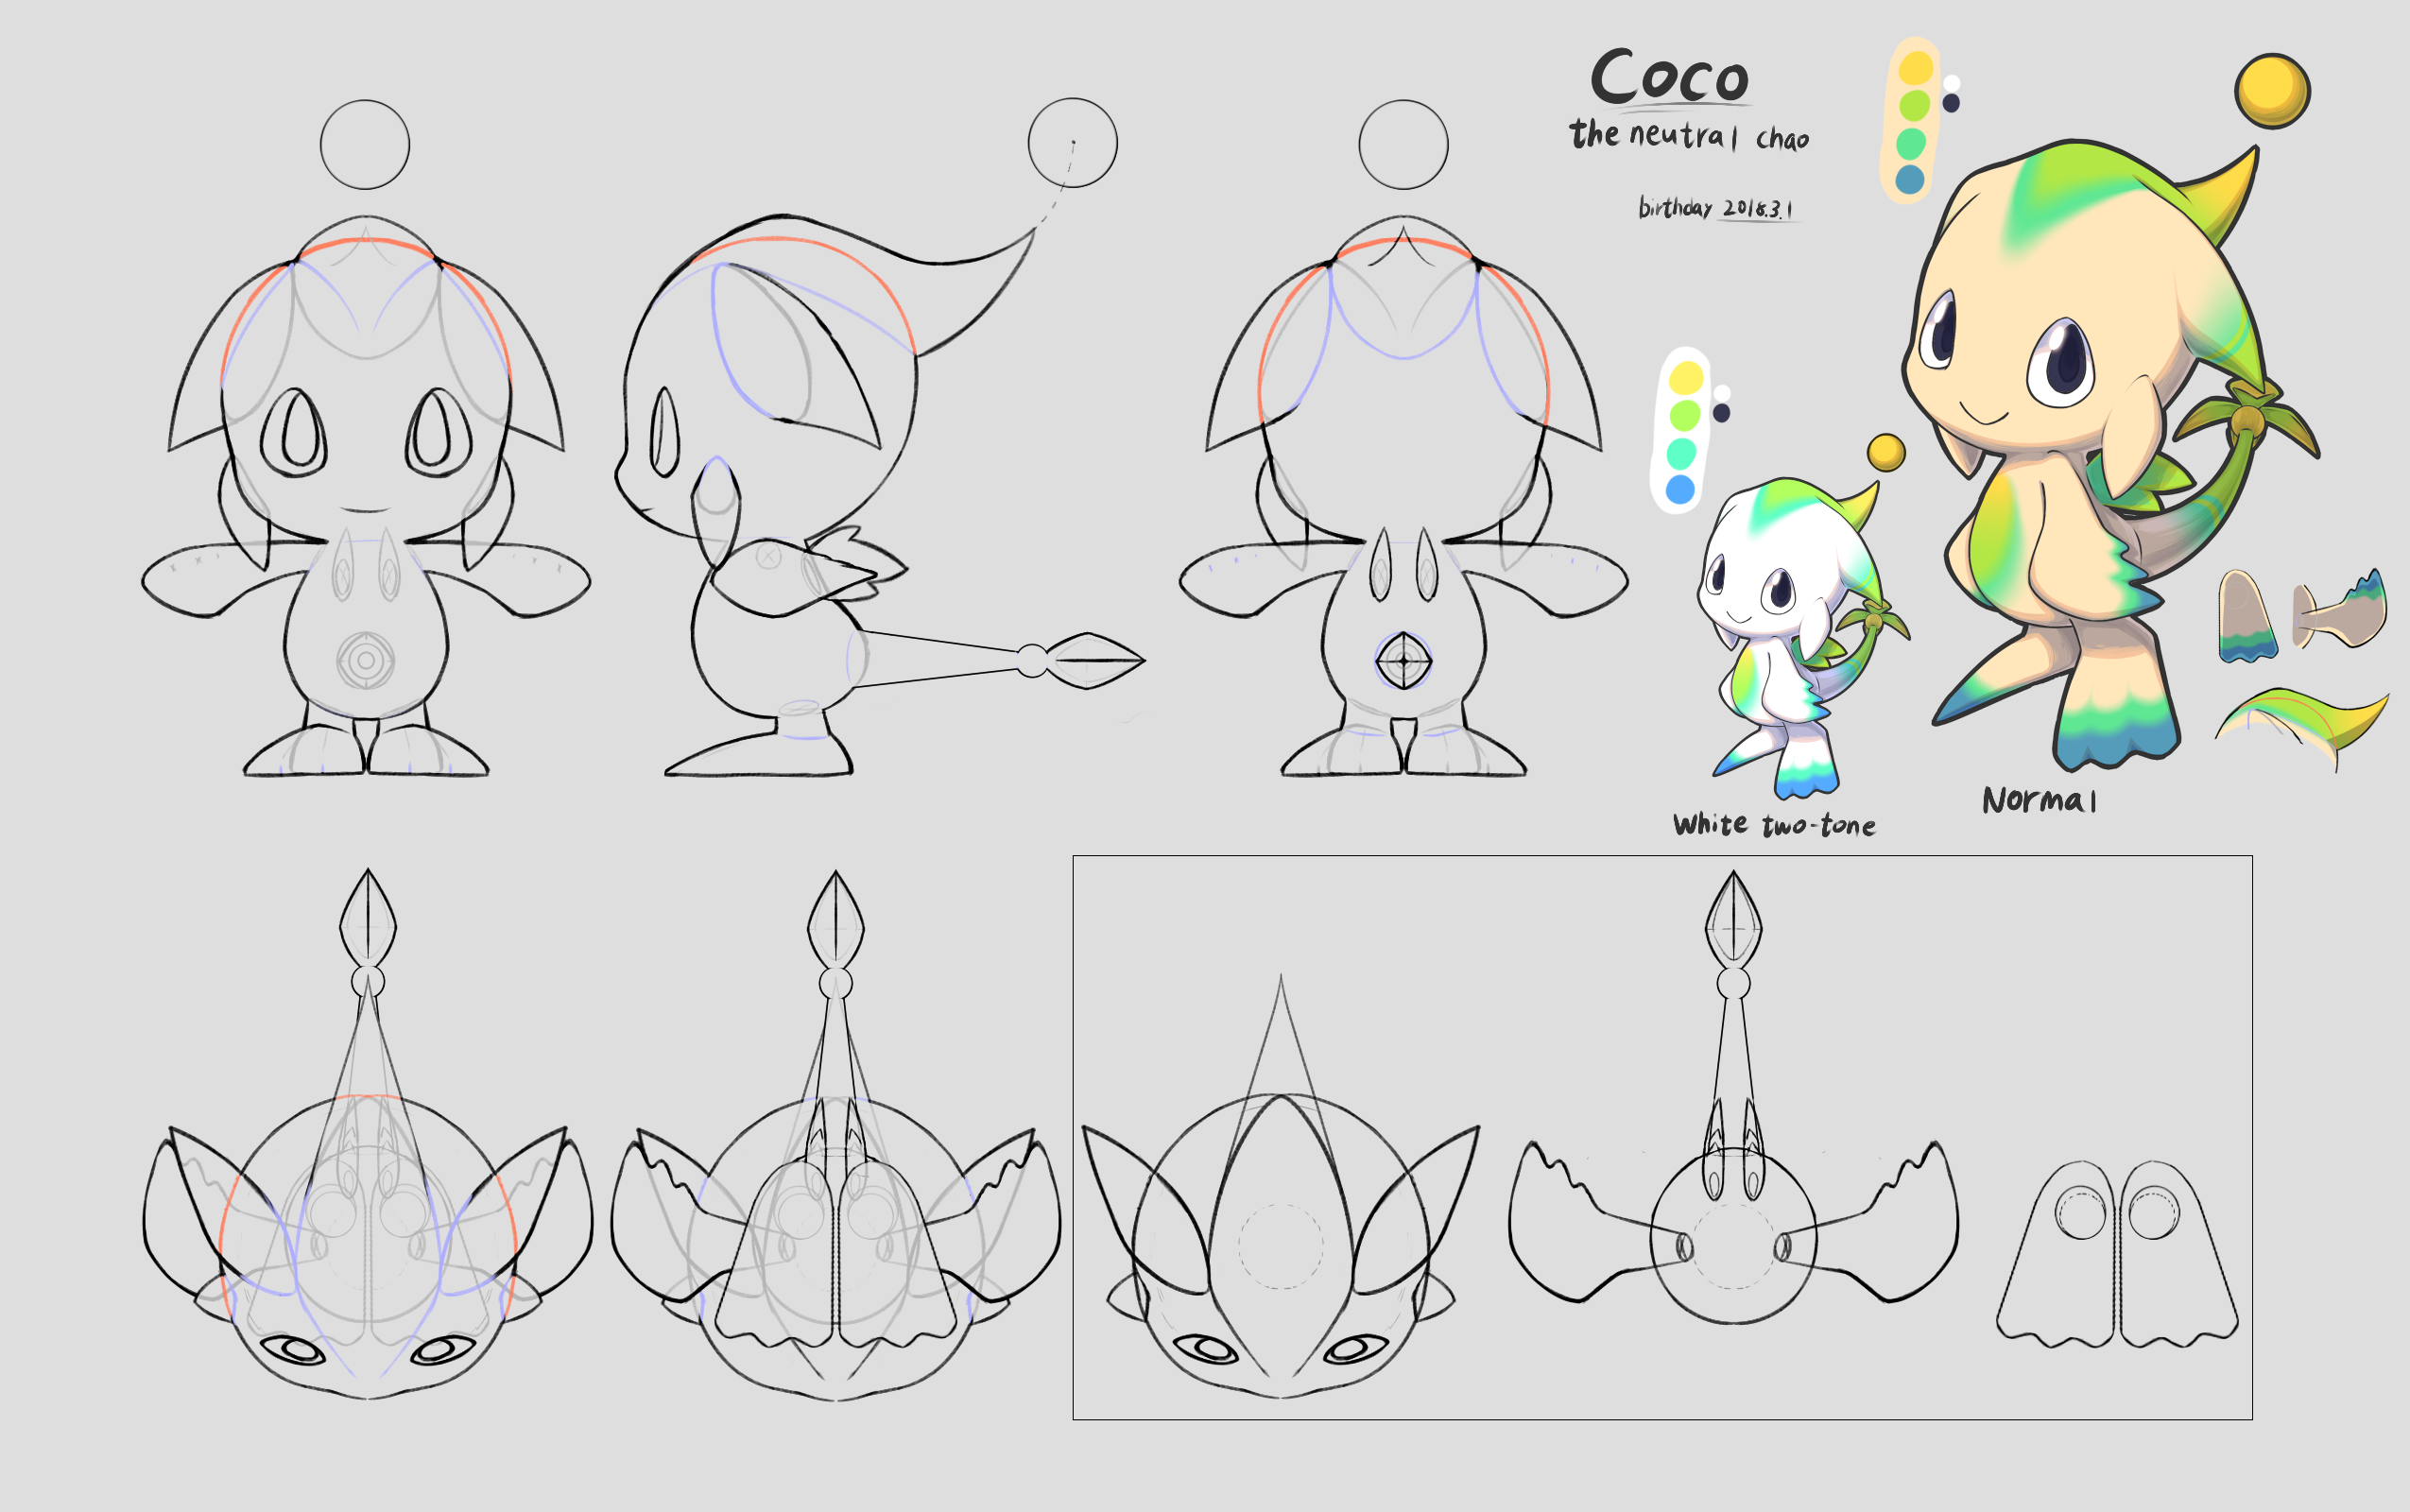 The full reference sheet by Yimoo, so you can make your own Coco!